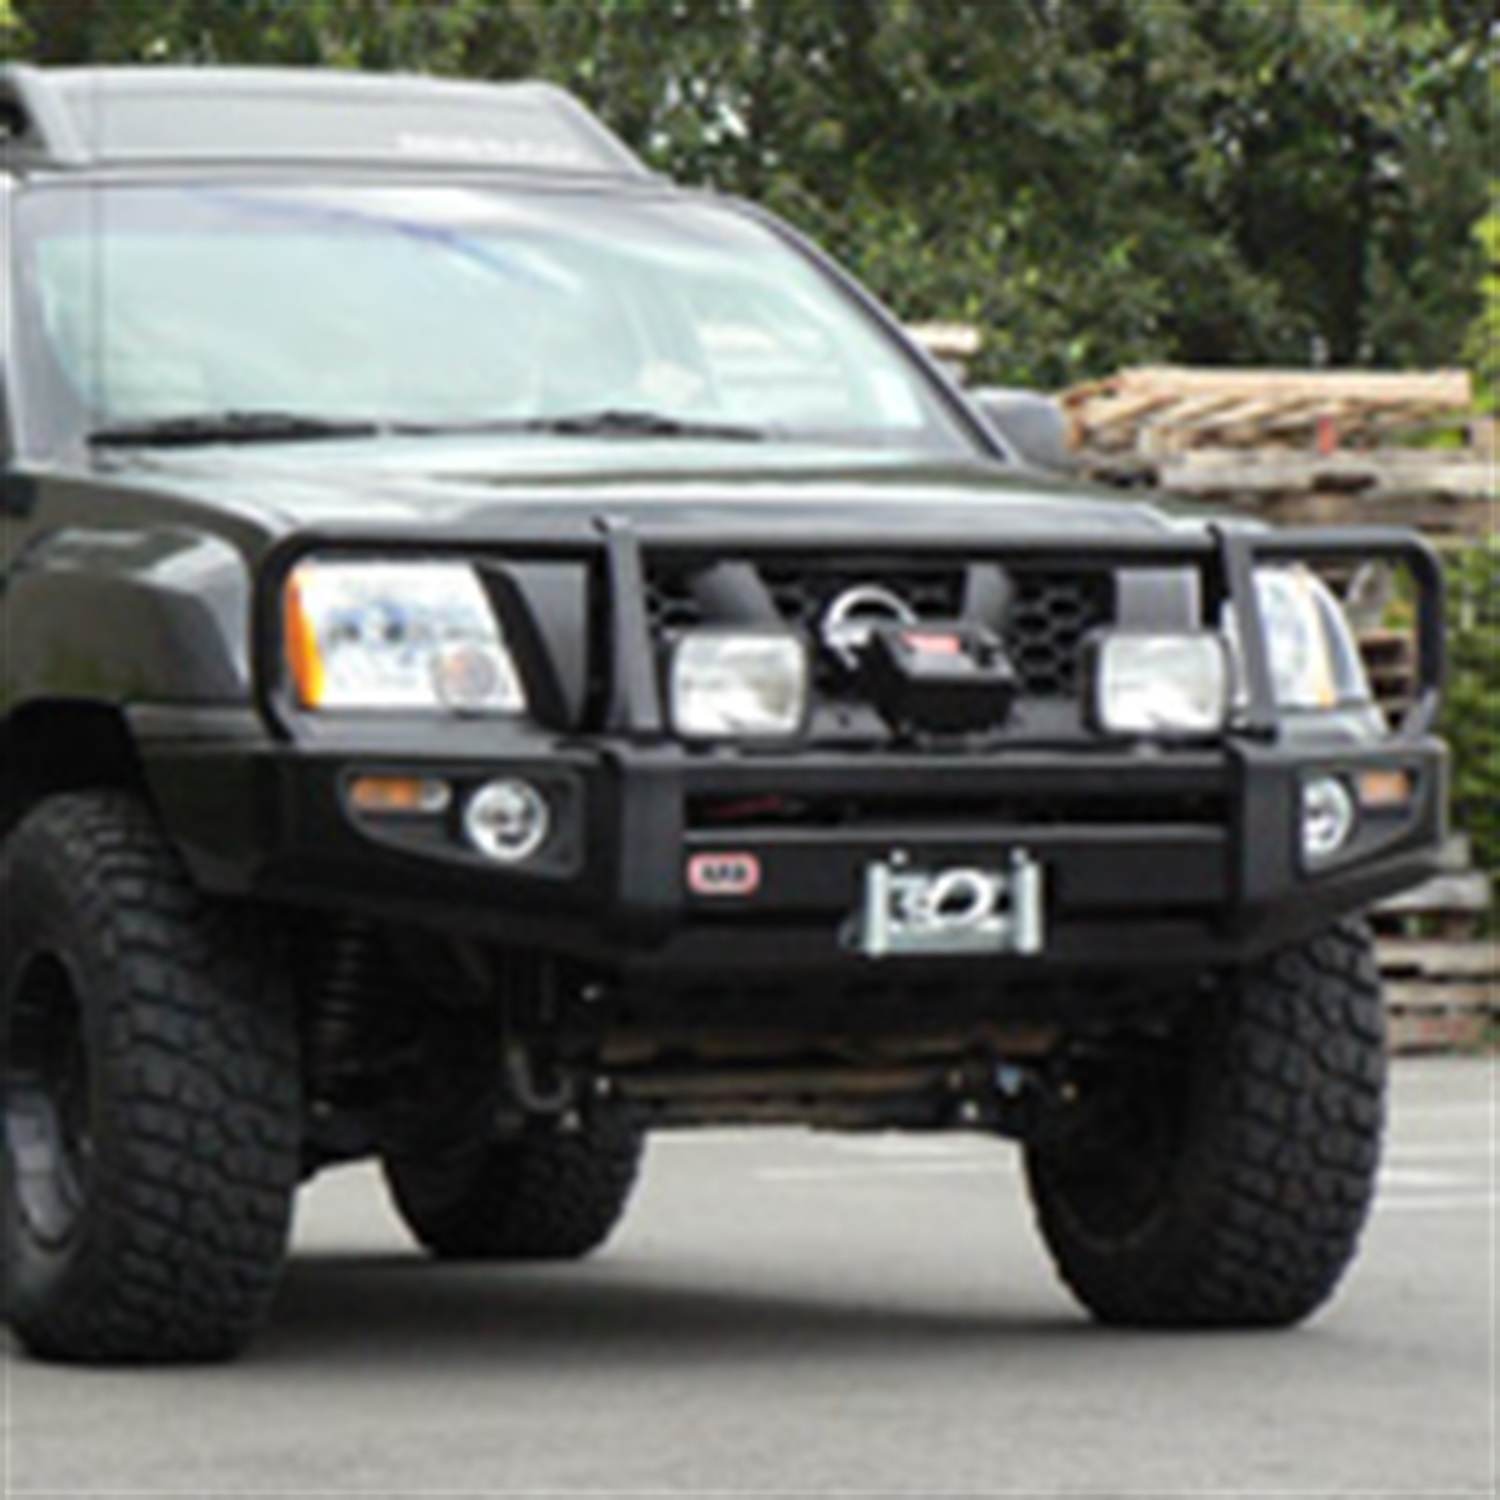 hight resolution of details about arb 4x4 accessories 3500590 fog light kit fits f 250 super duty f 350 super duty